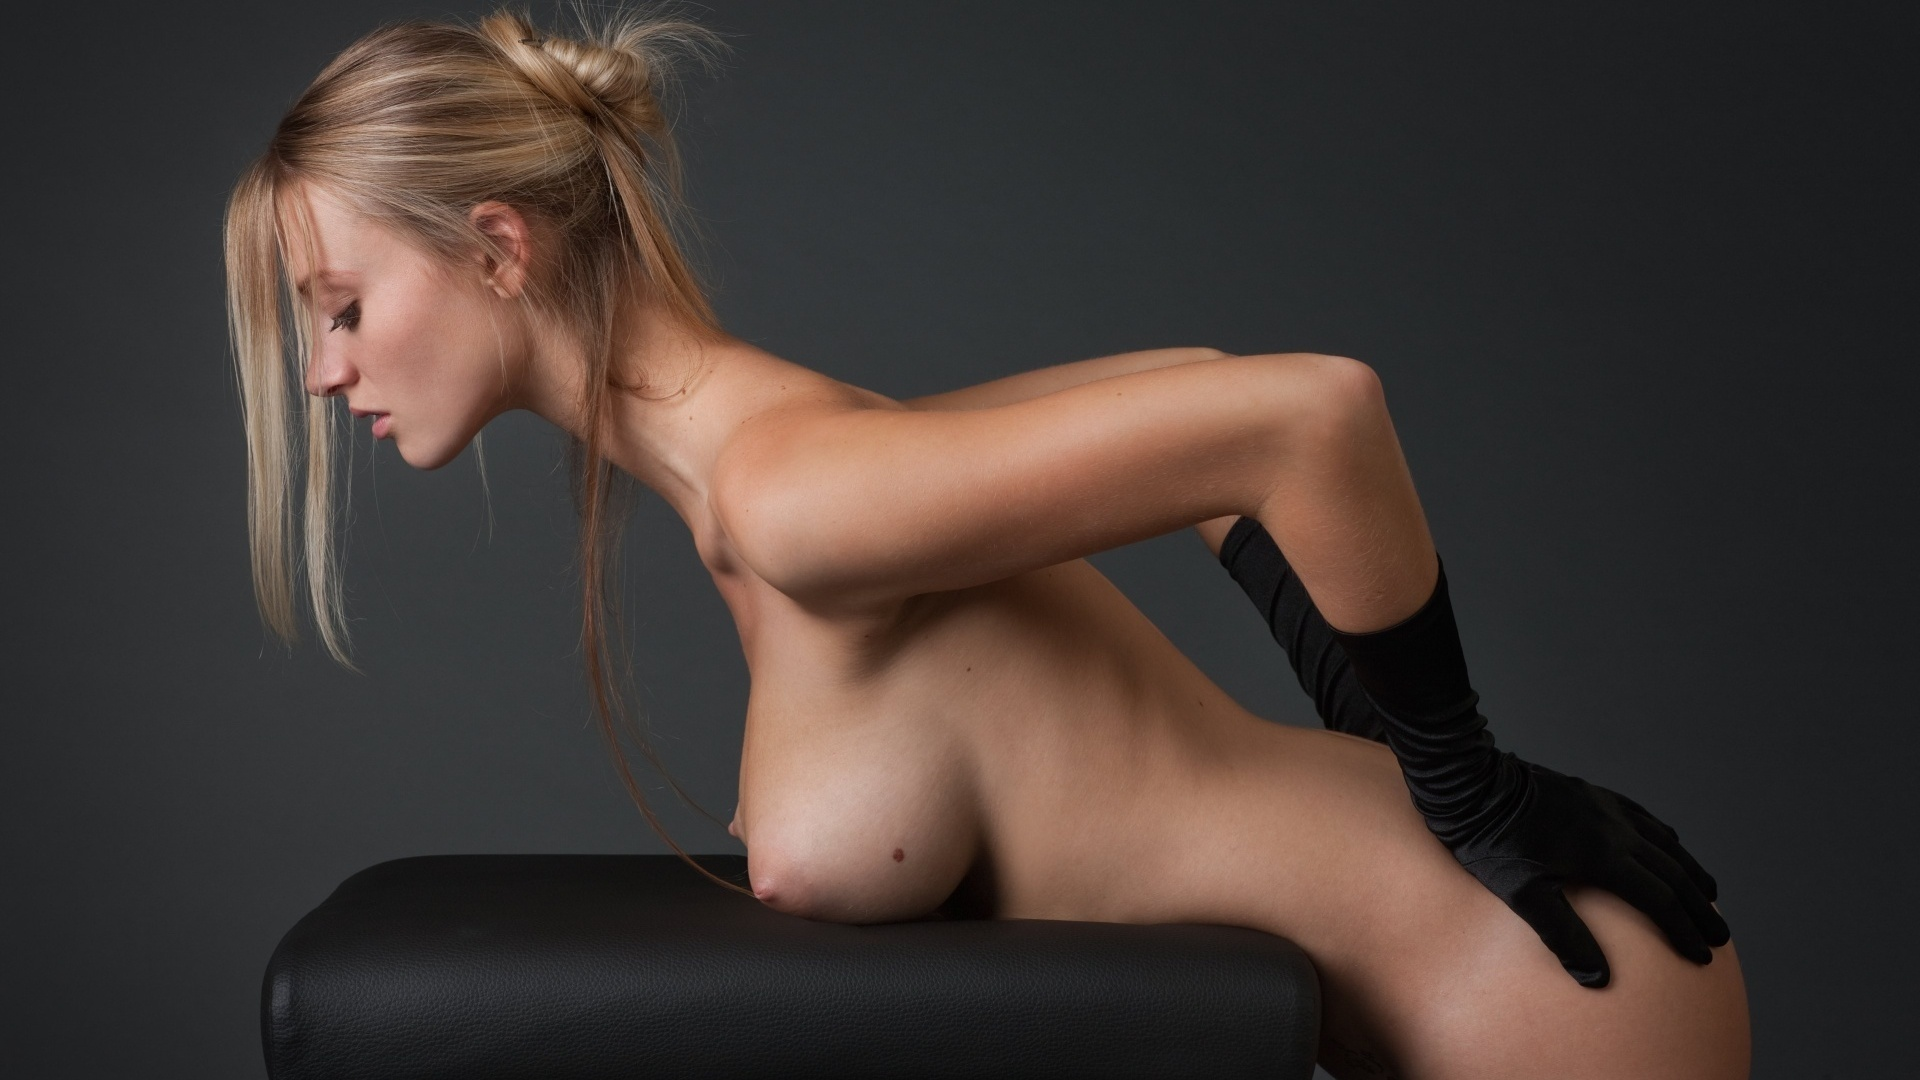 Technology nude girl #8